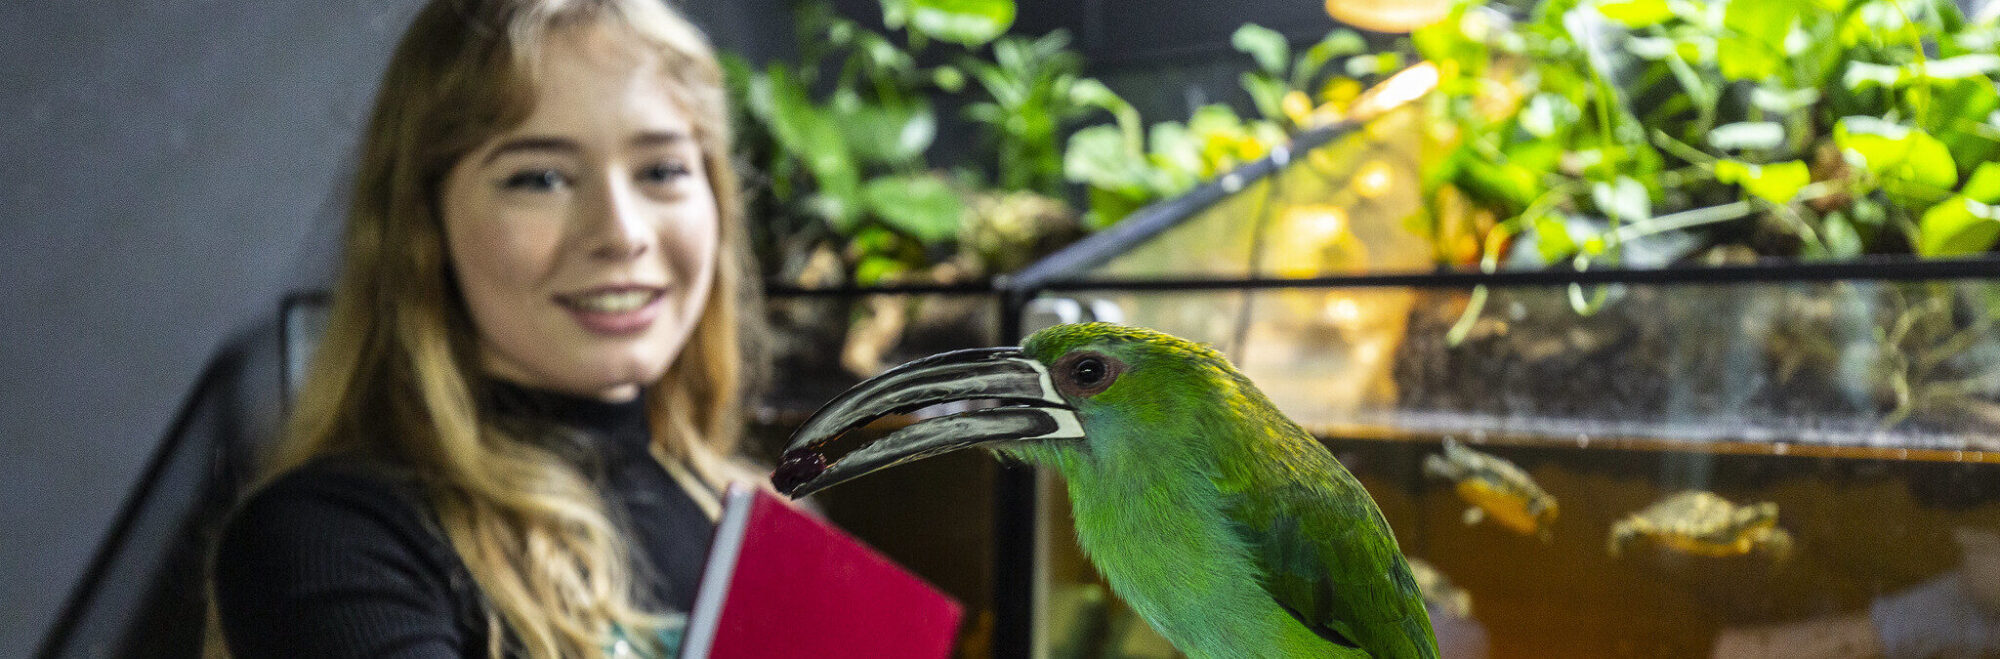 Student and toucanet Animal Sciences Shuttleworth College